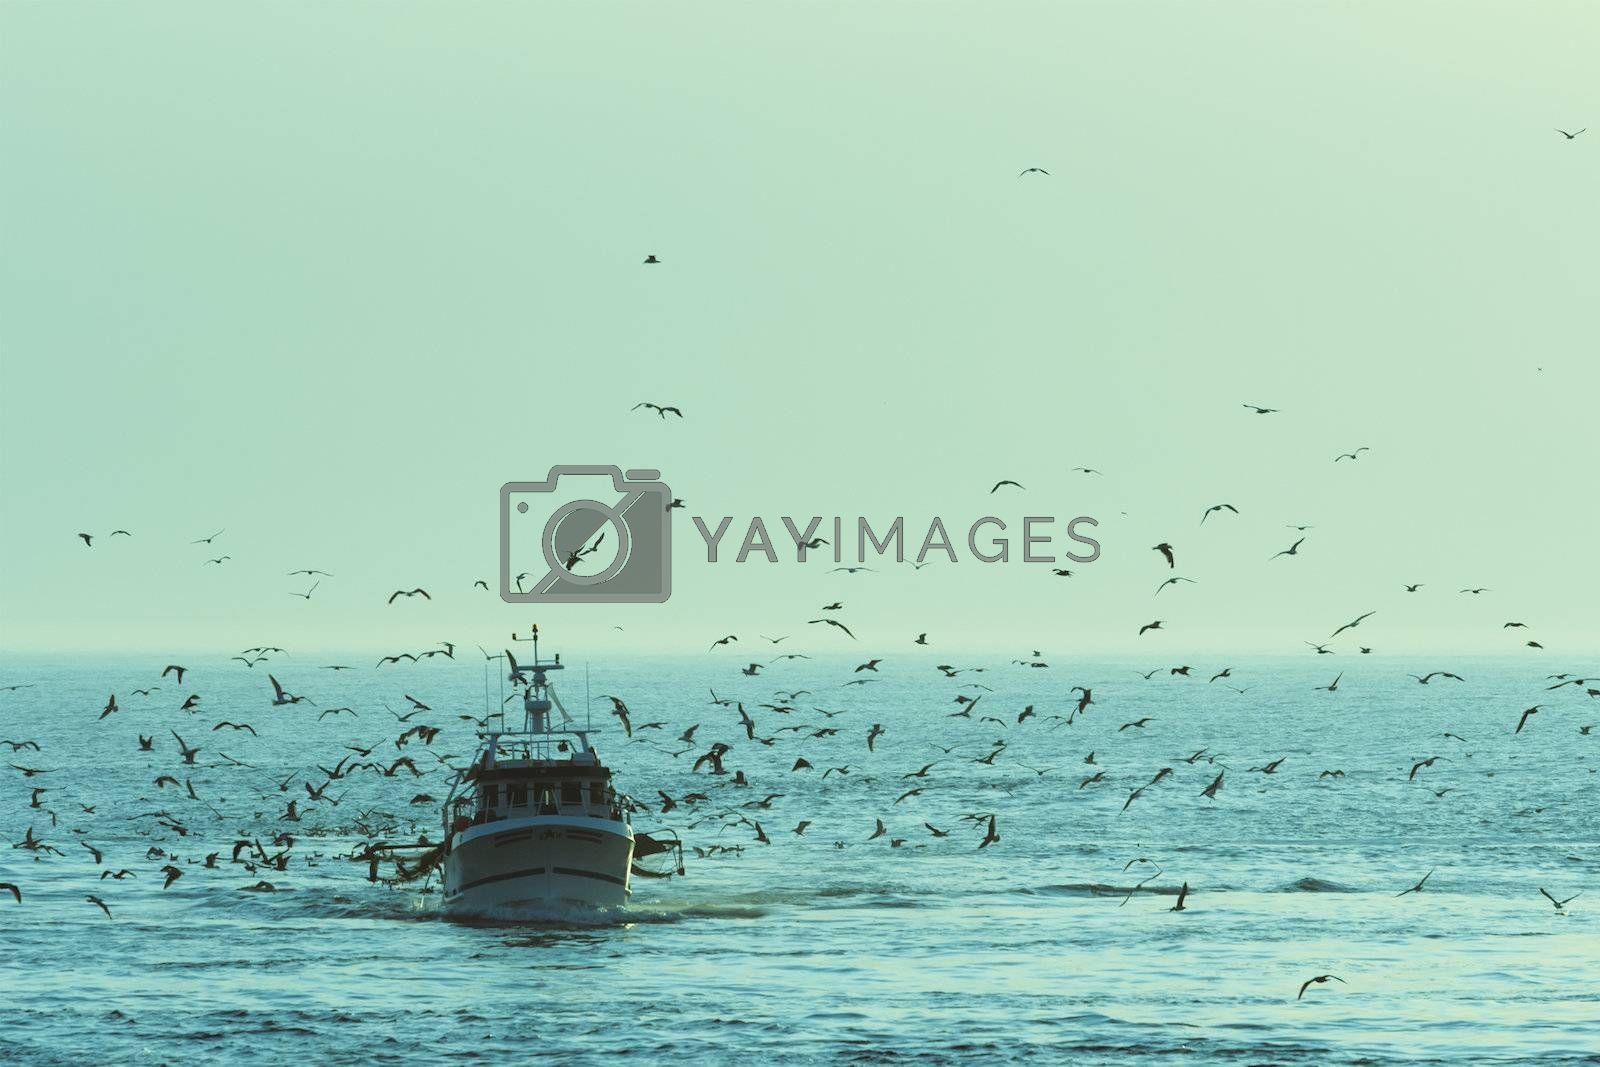 Fishing boat returning with lots of seagulls feeding at the rear of the boat